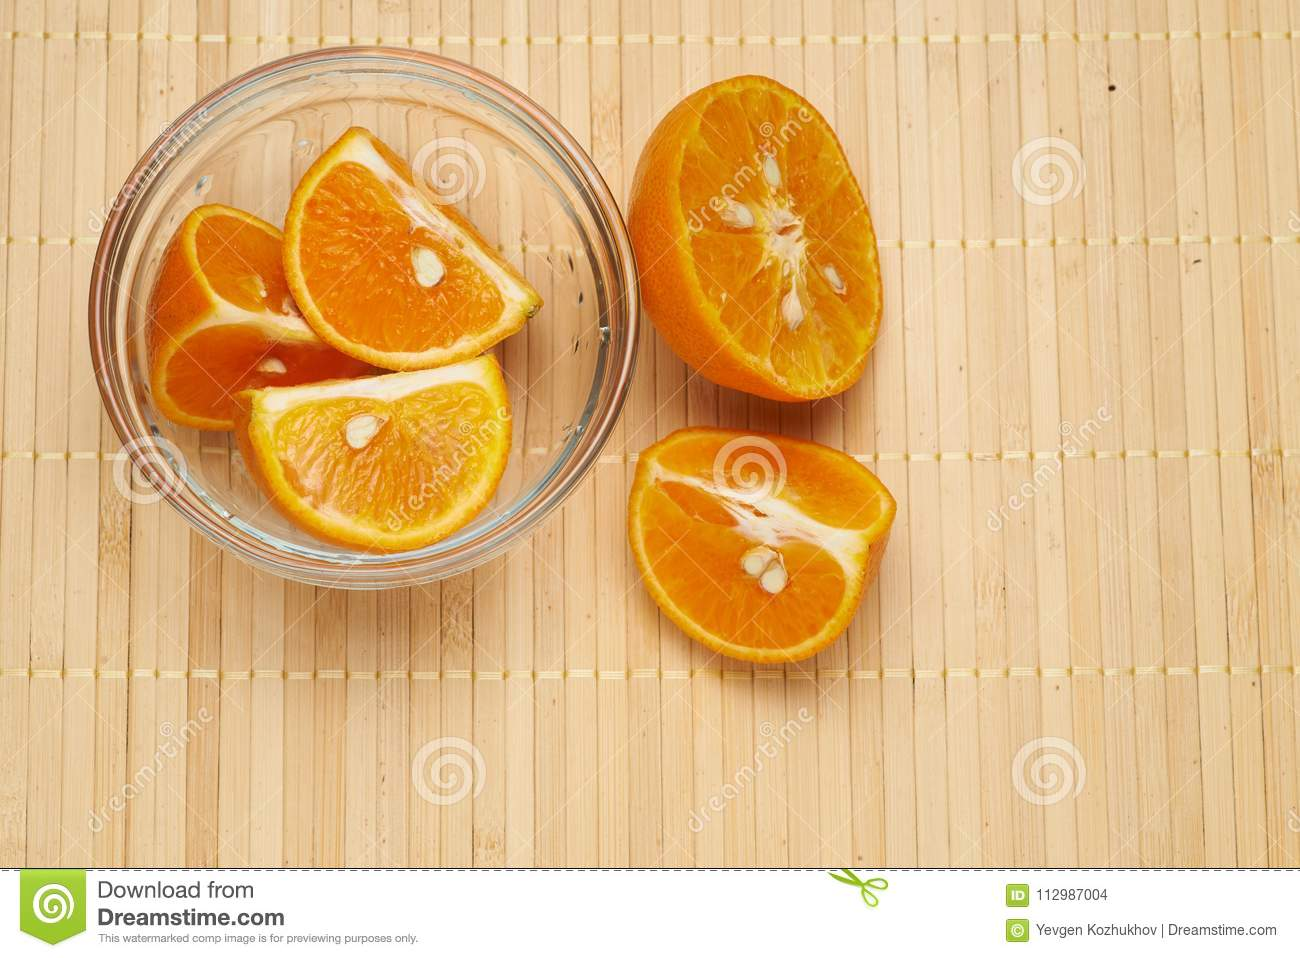 tangerines in a glass plate on a bamboo background